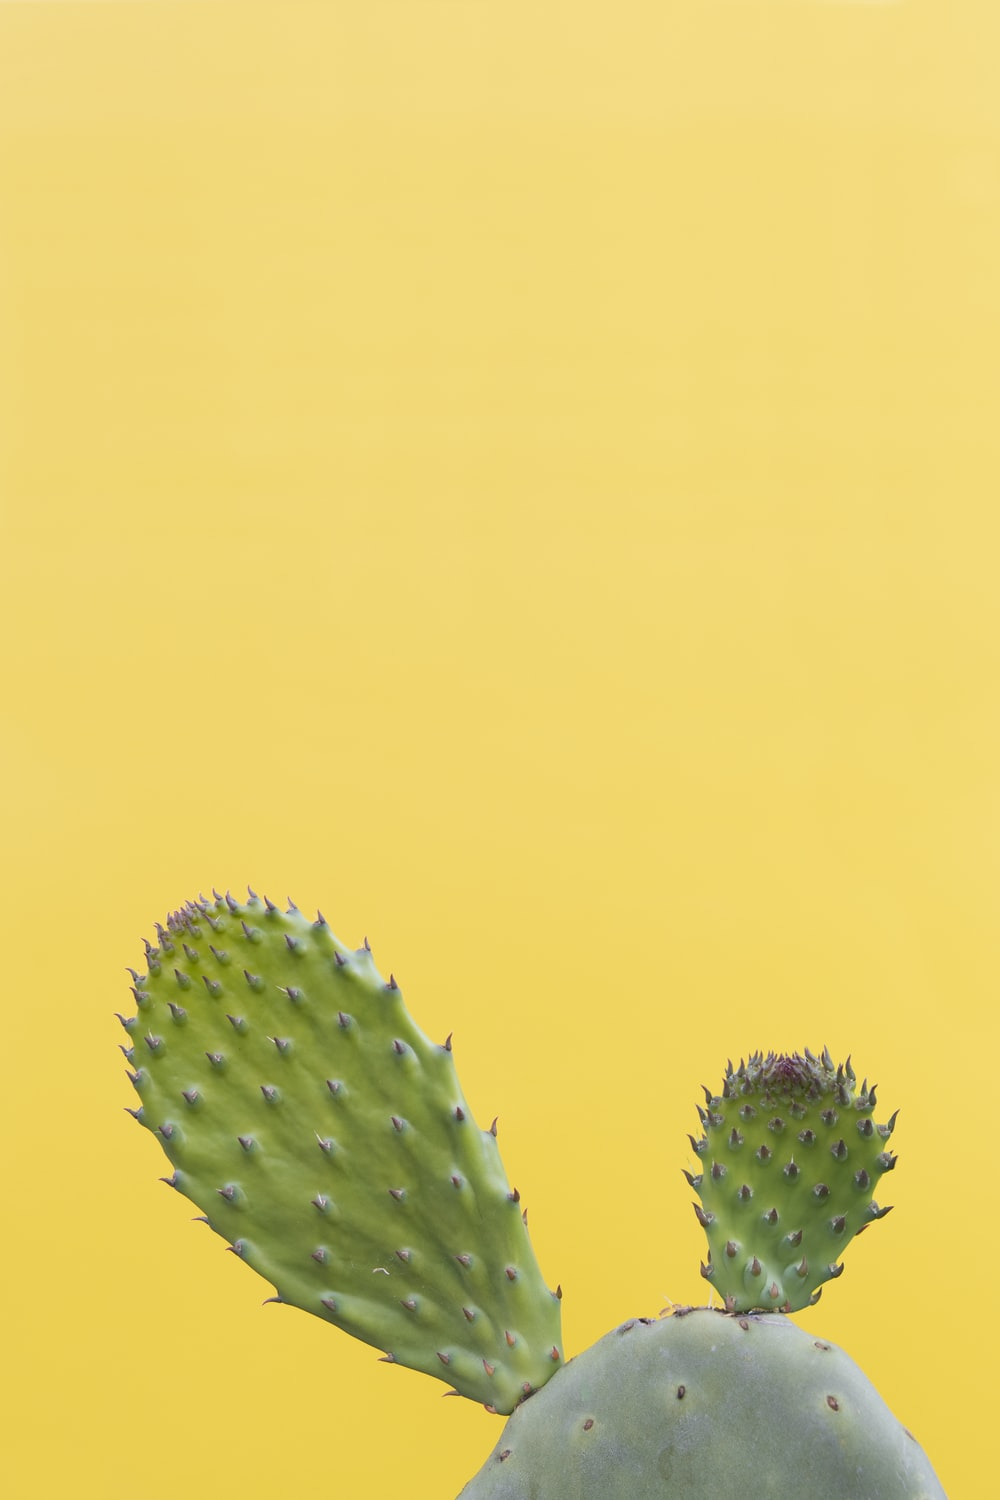 green cactus in yellow background